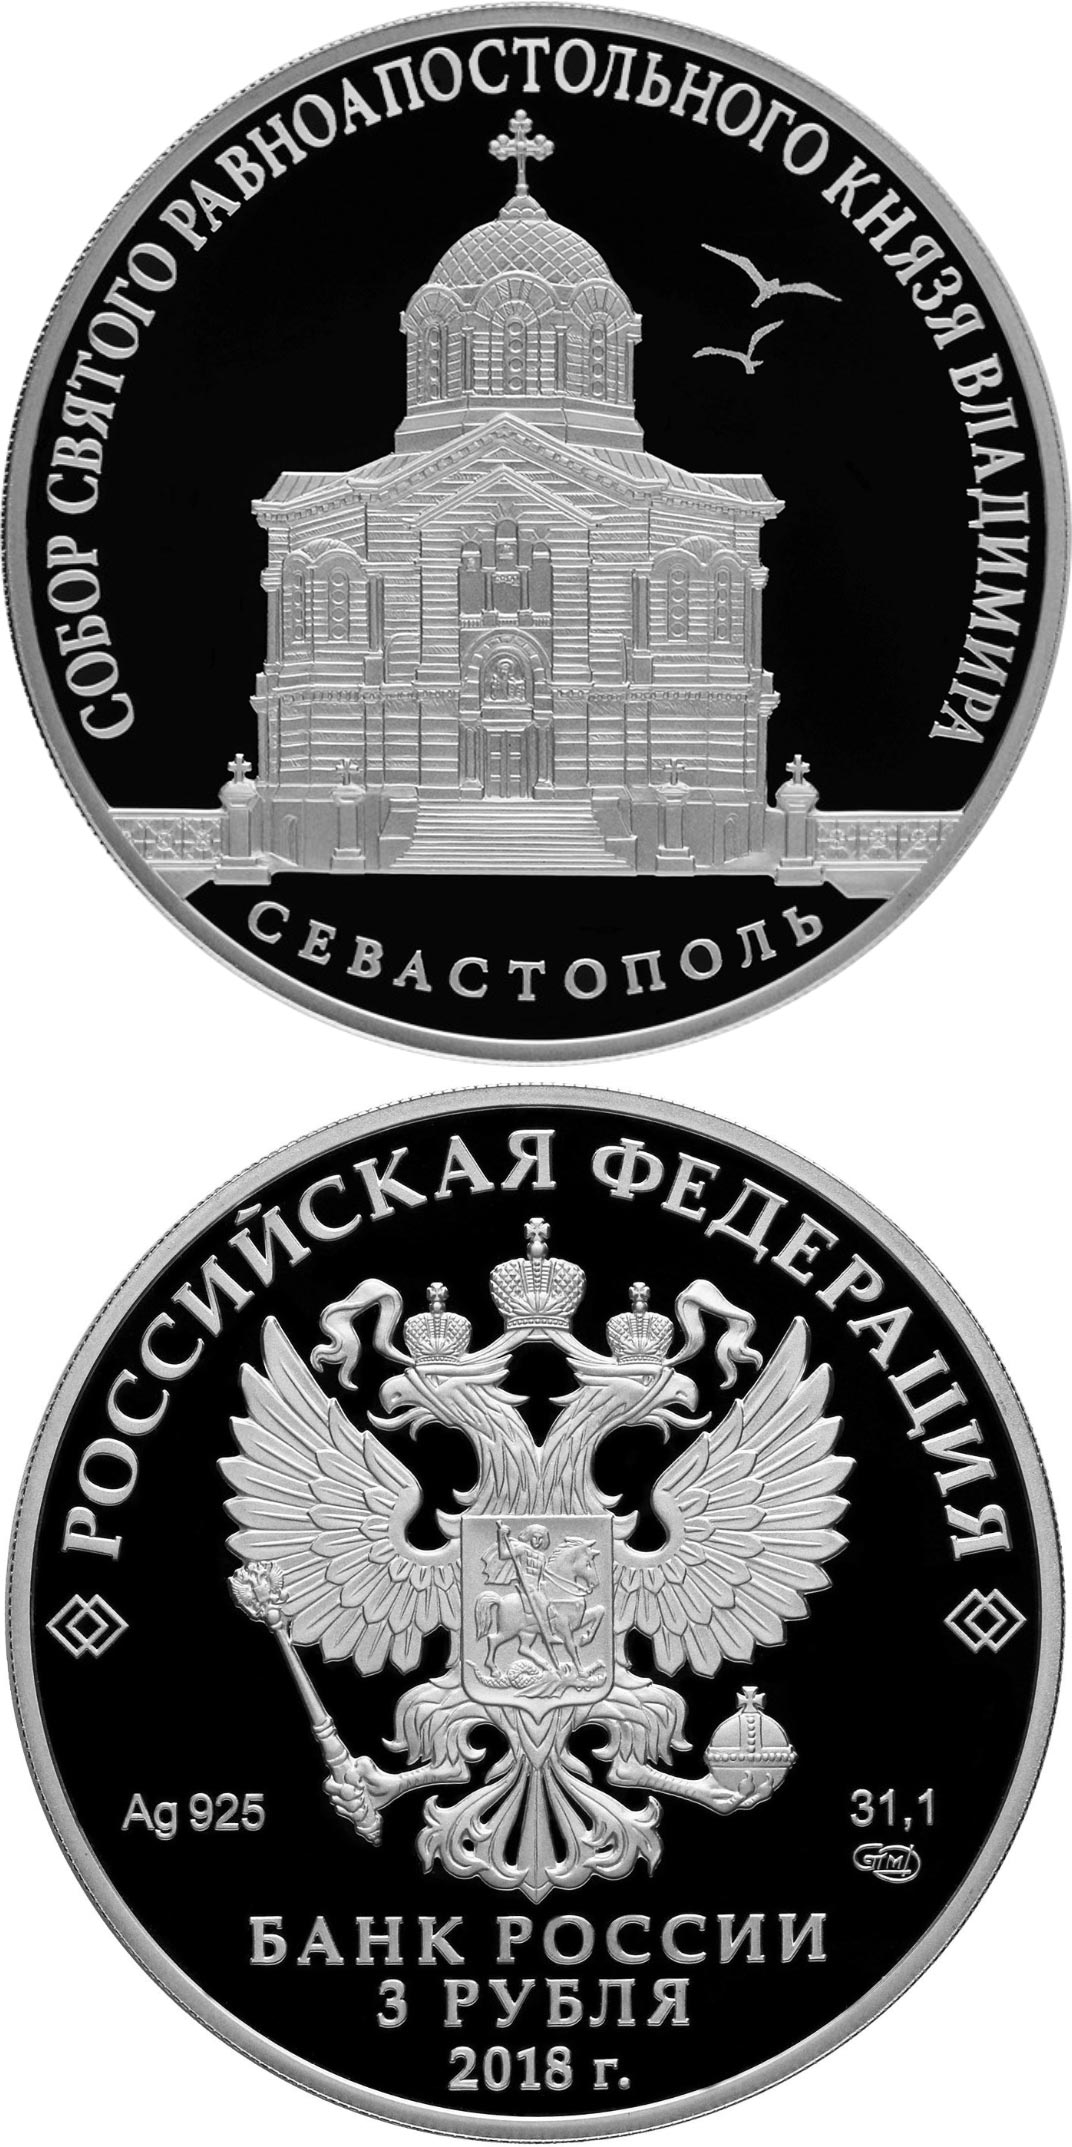 Image of 3 rubles coin – Saint Vladimir's Cathedral | Russia 2018.  The Silver coin is of Proof quality.